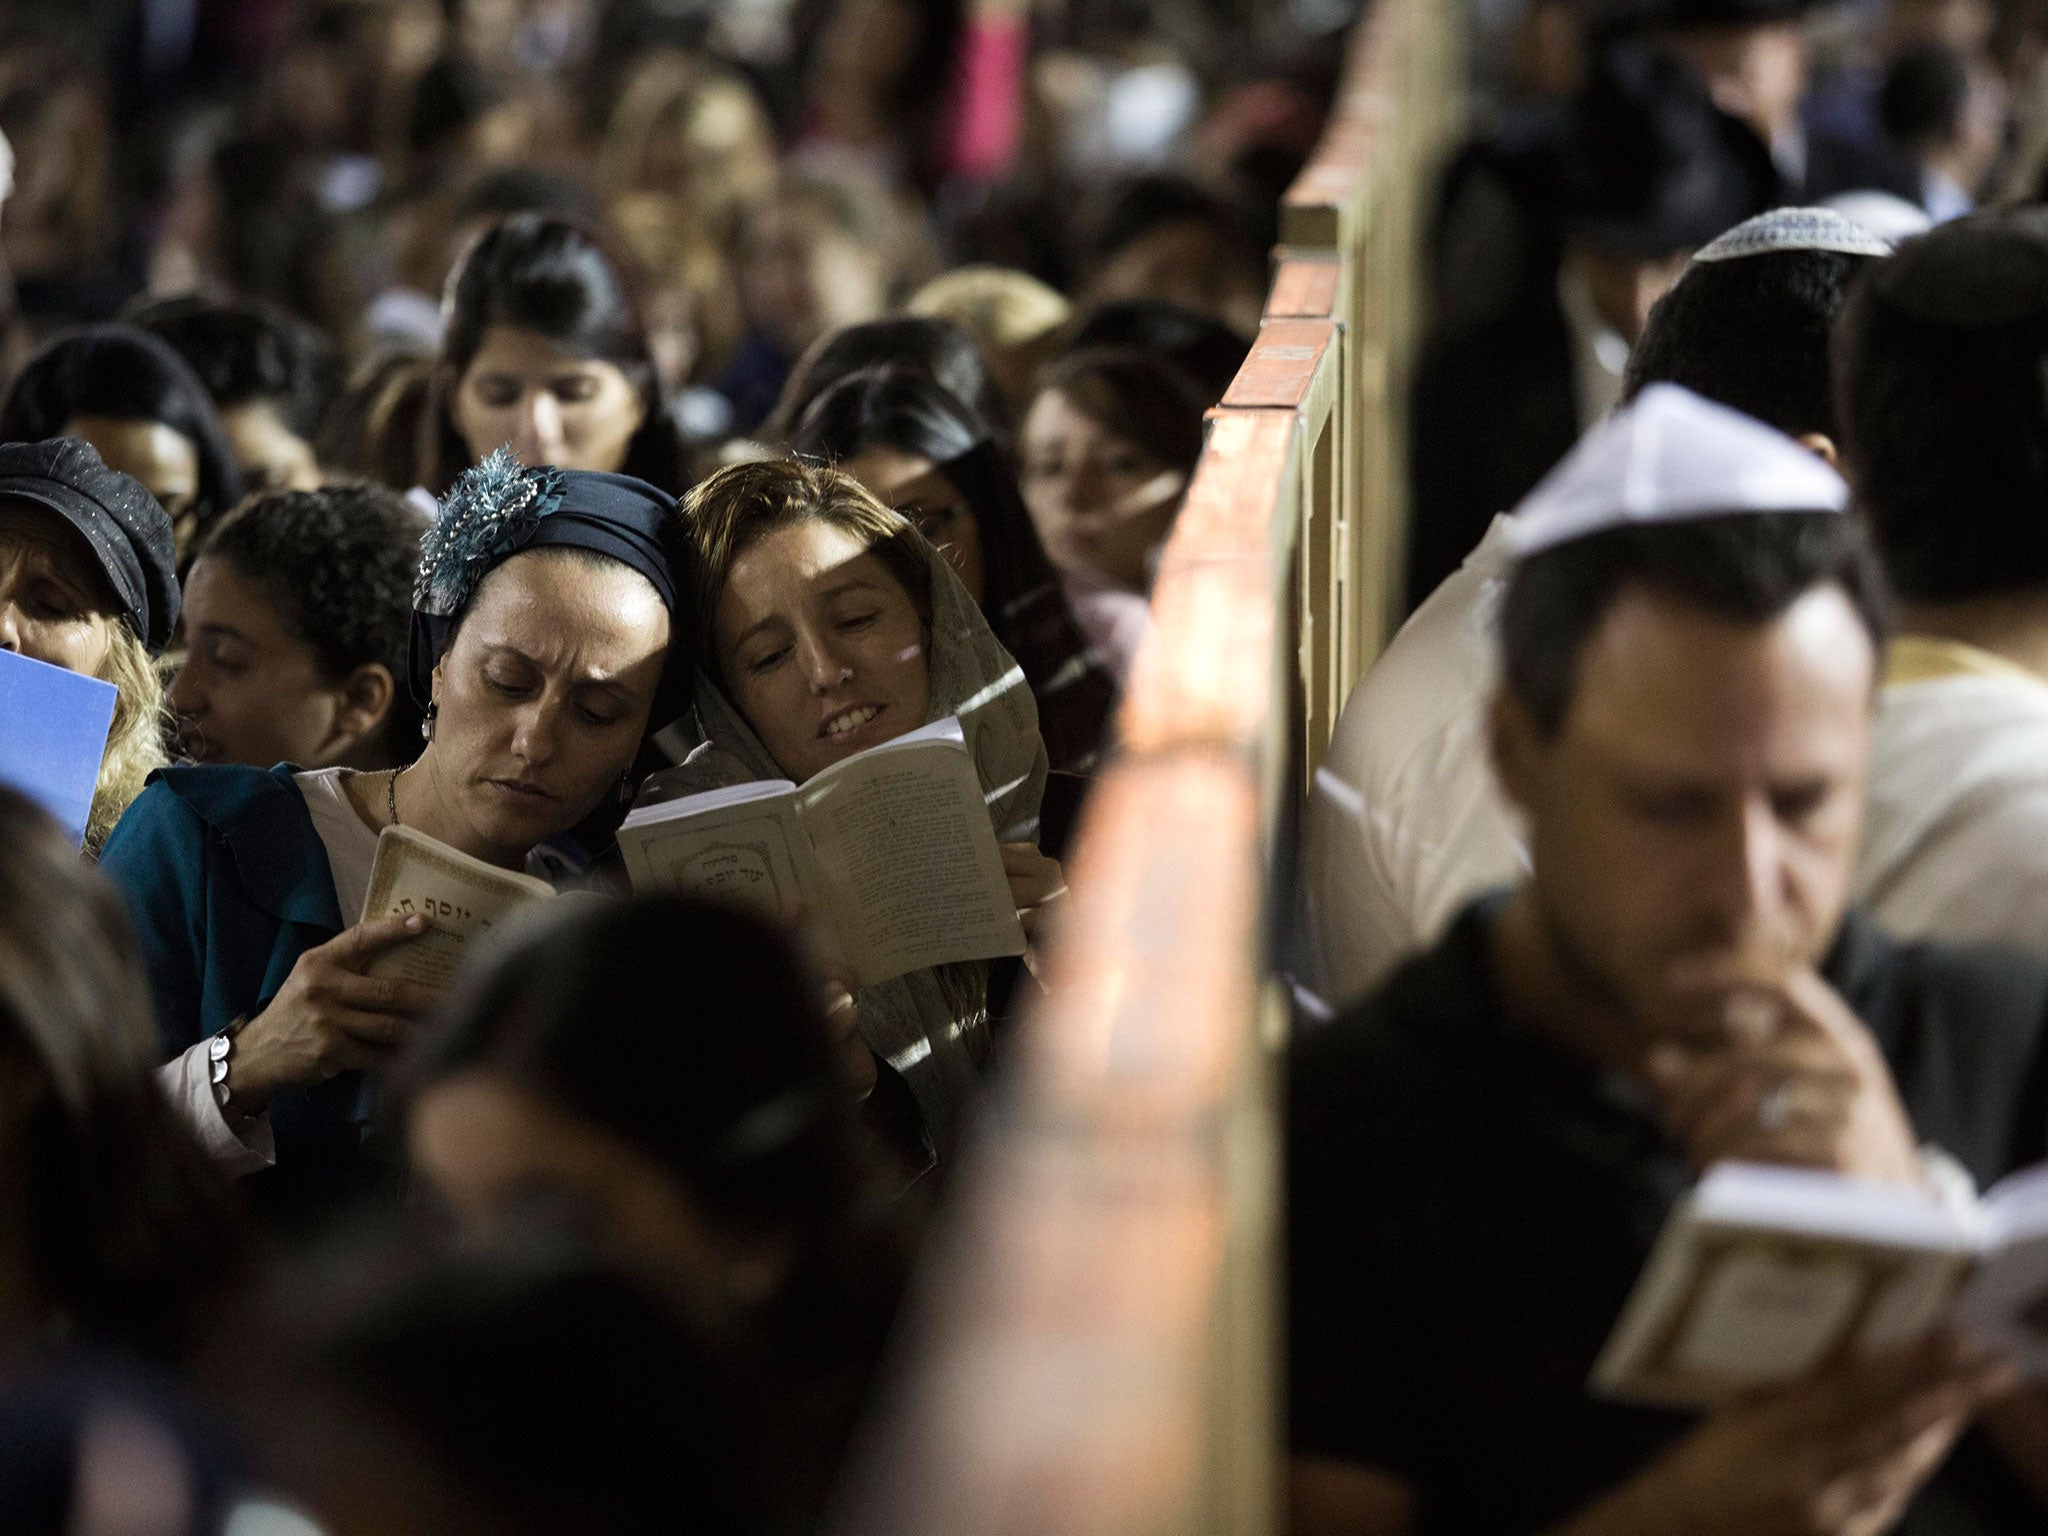 Rosh Hashanah 2017 When Is It And Why Is It Celebrated The